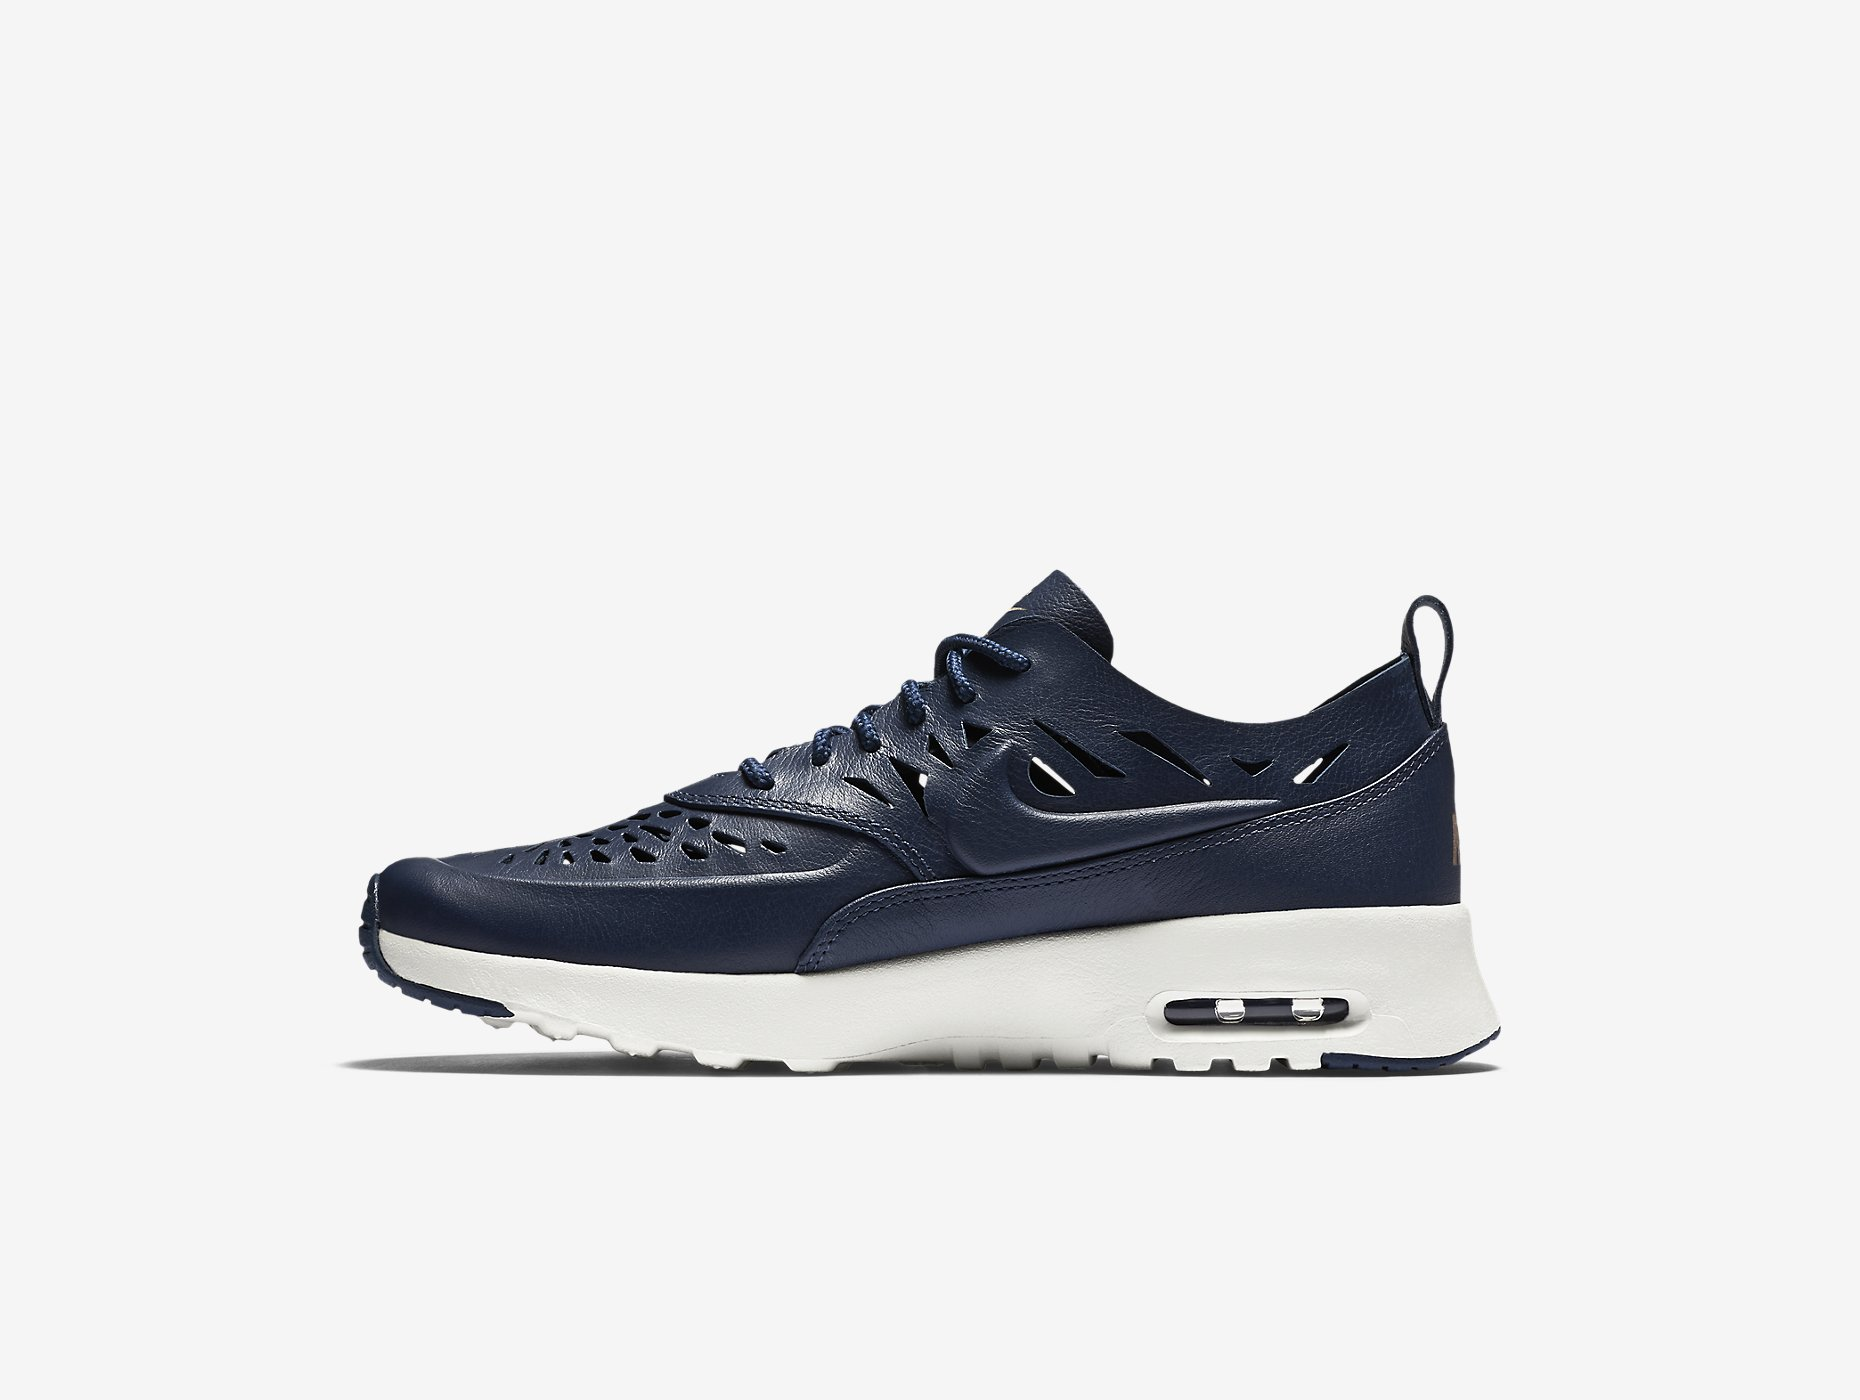 nike air max thea joli navy blue sneakers addict. Black Bedroom Furniture Sets. Home Design Ideas